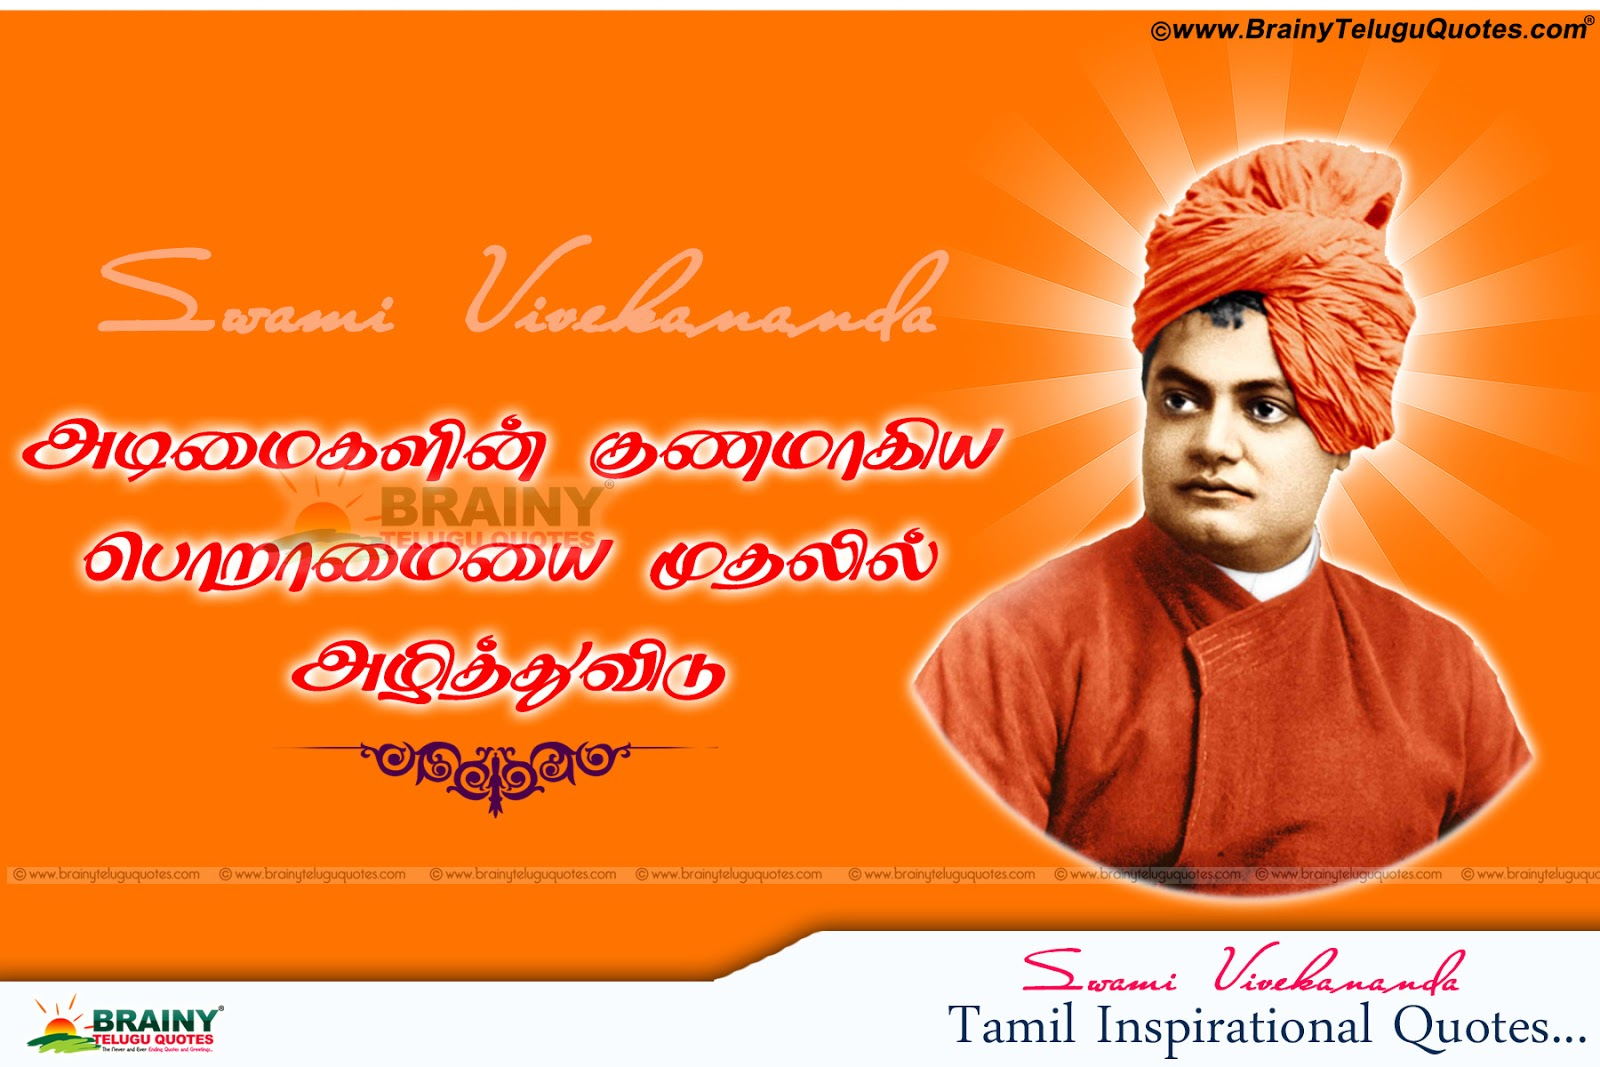 swami vivekananda quotes with images on life in tamil